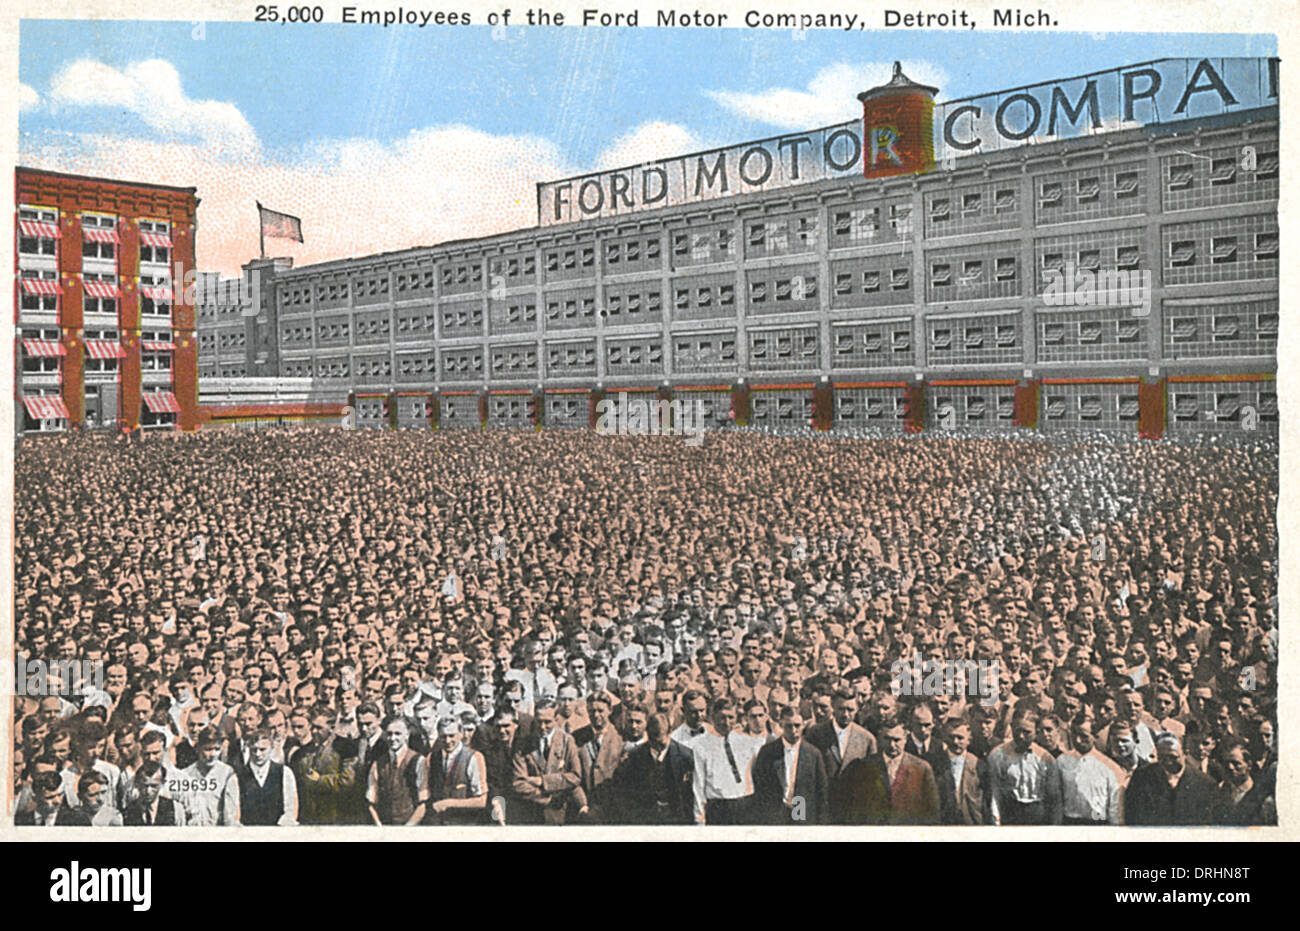 employees ford motor company detroit michigan usa